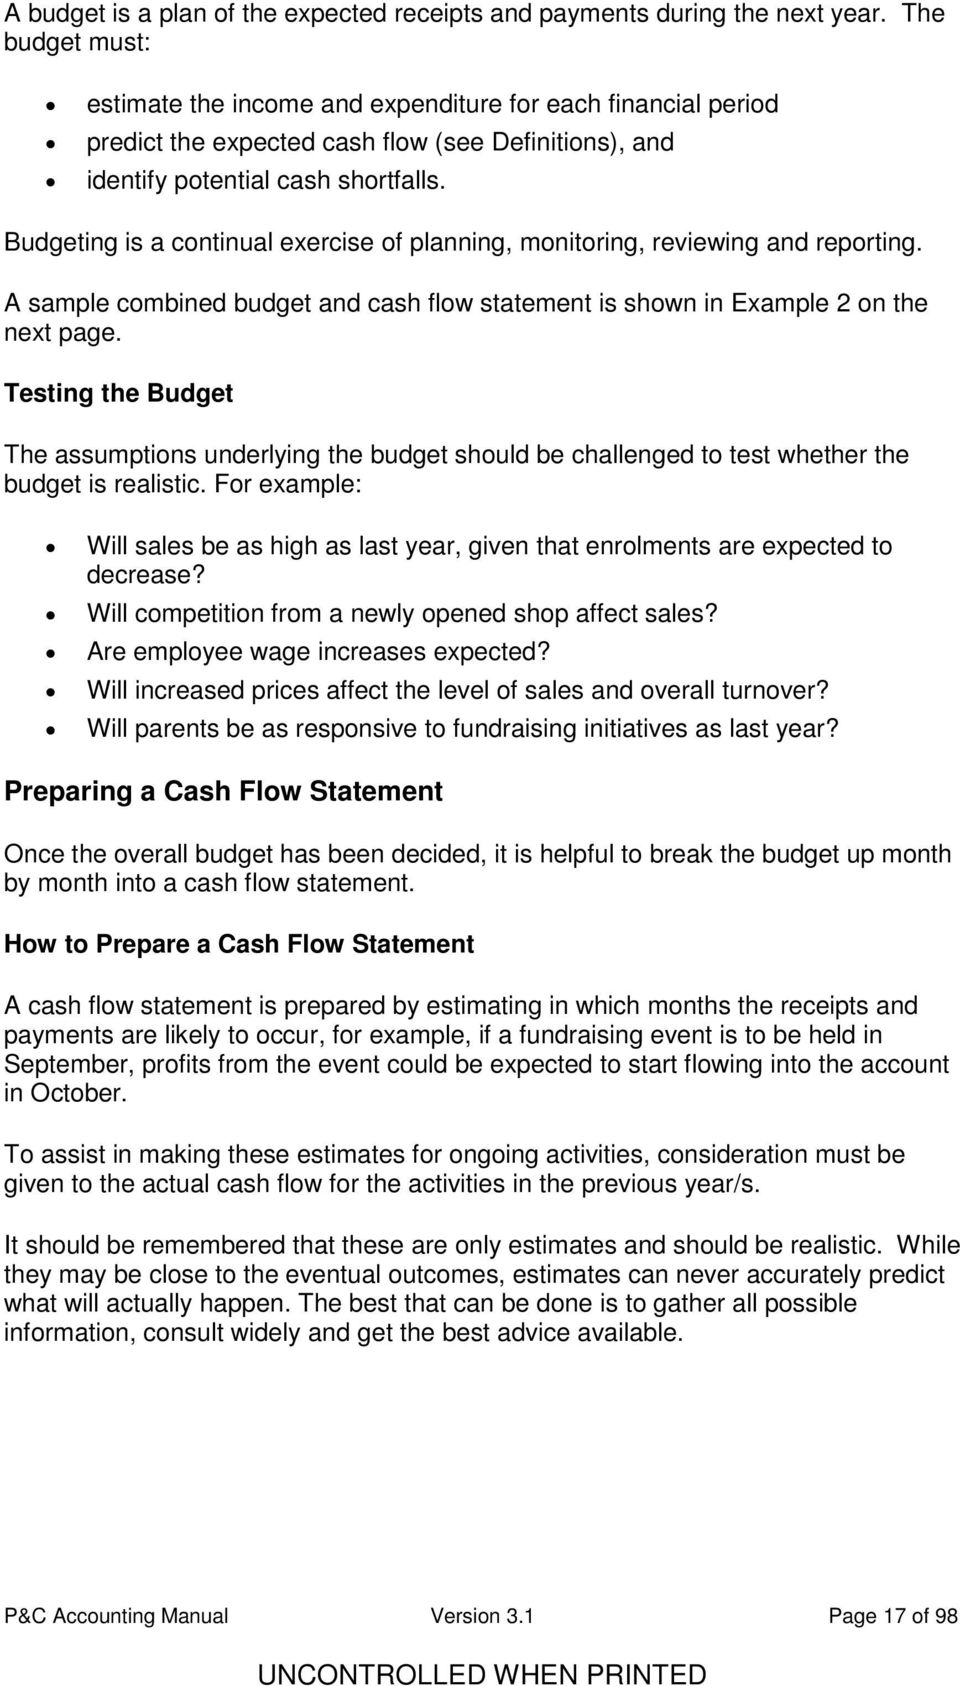 Budgeting is a continual exercise of planning, monitoring, reviewing and reporting. A sample combined budget and cash flow statement is shown in Example 2 on the next page.